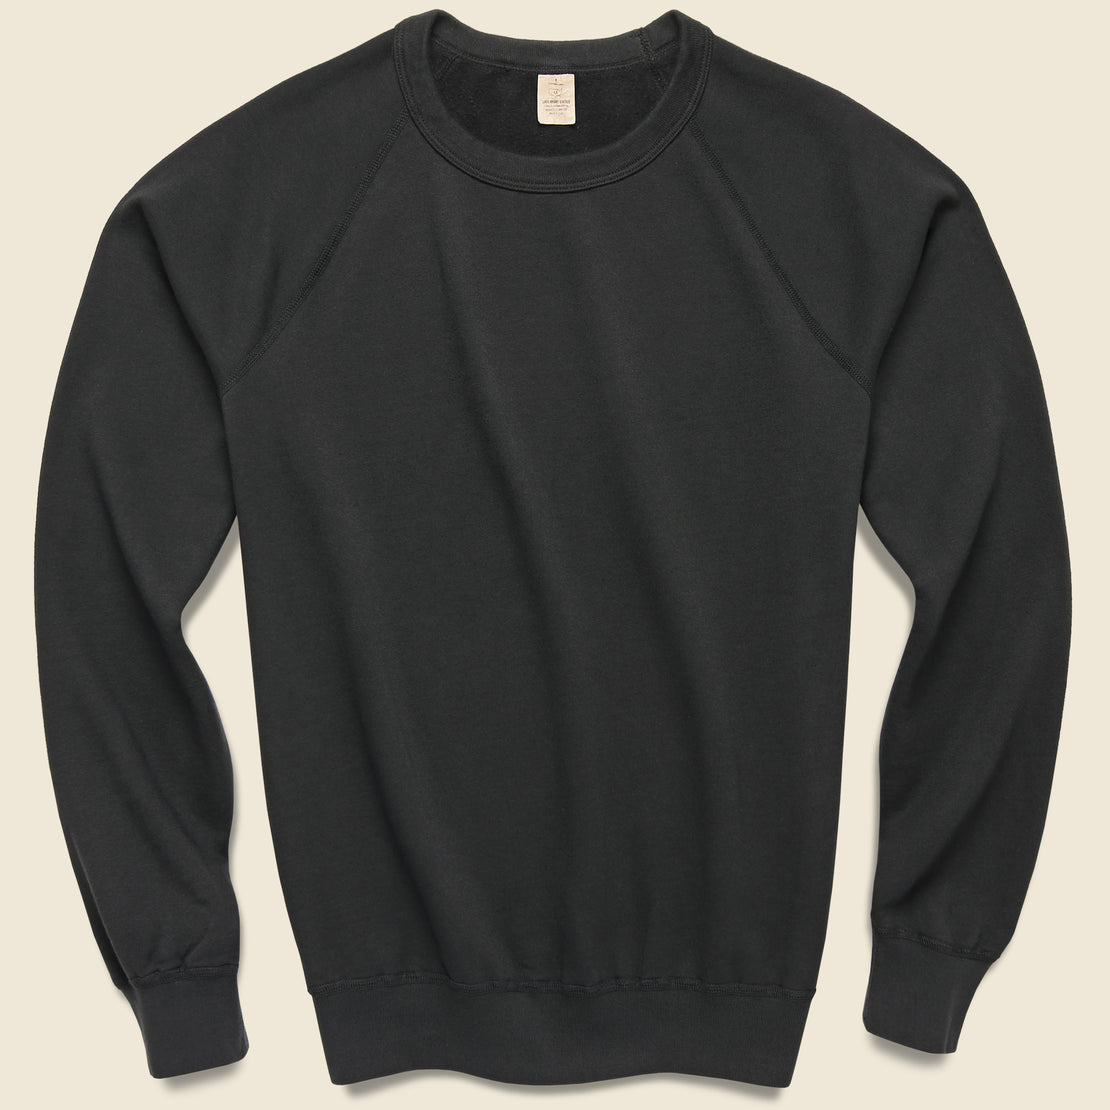 Save Khaki Supima Fleece Sweatshirt - Black